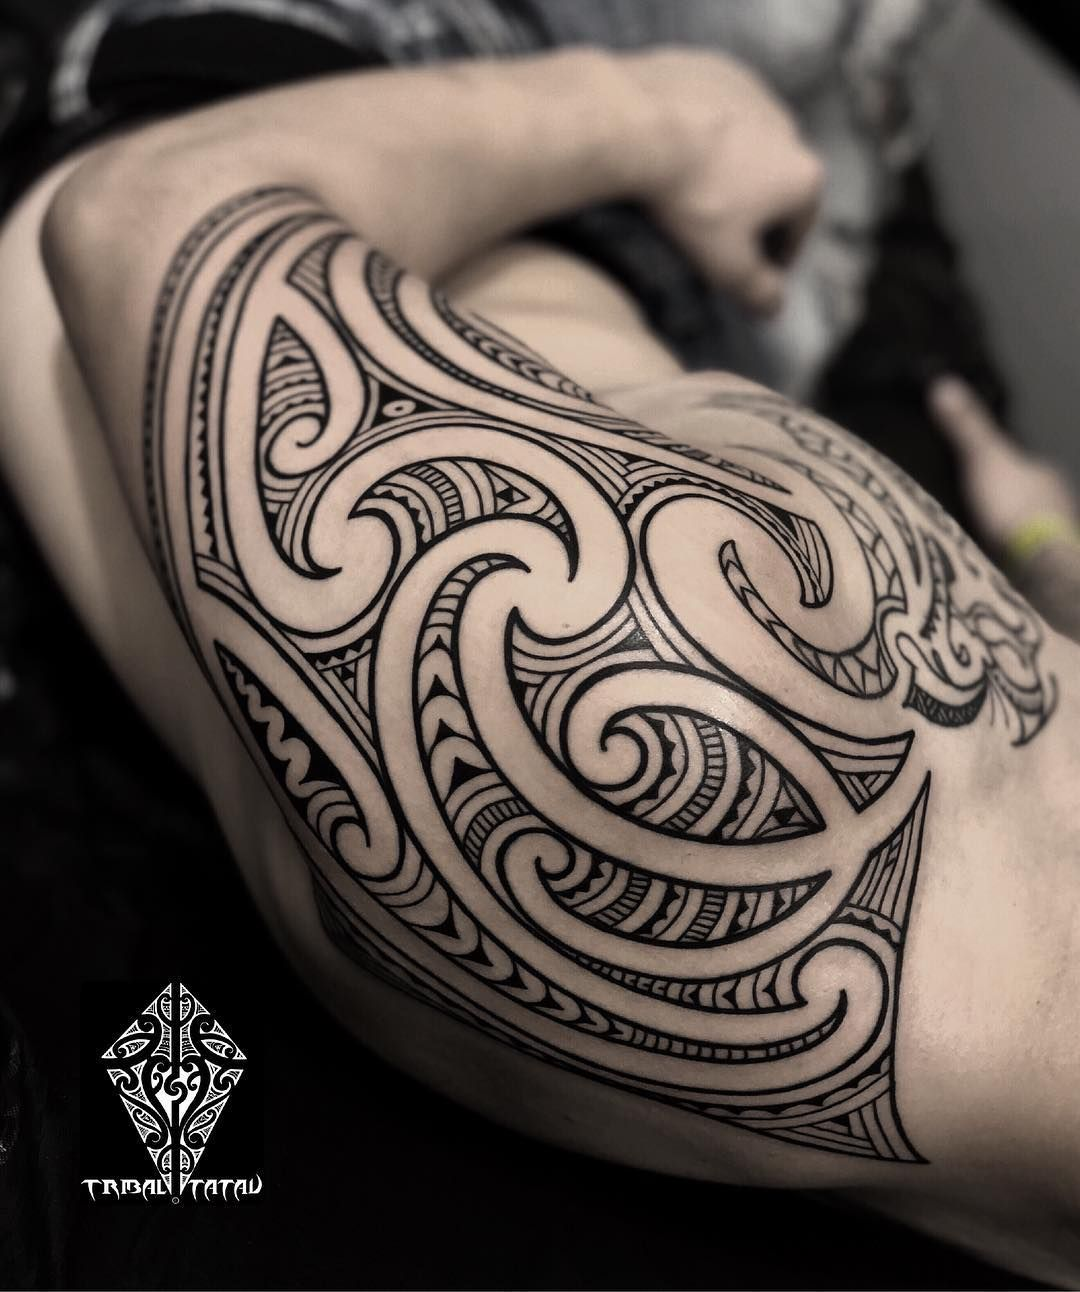 100 Best Tribal Tattoos And Designs For Men And Women Millions Grace Tribal Tattoos Cool Tribal Tattoos Small Tribal Tattoos